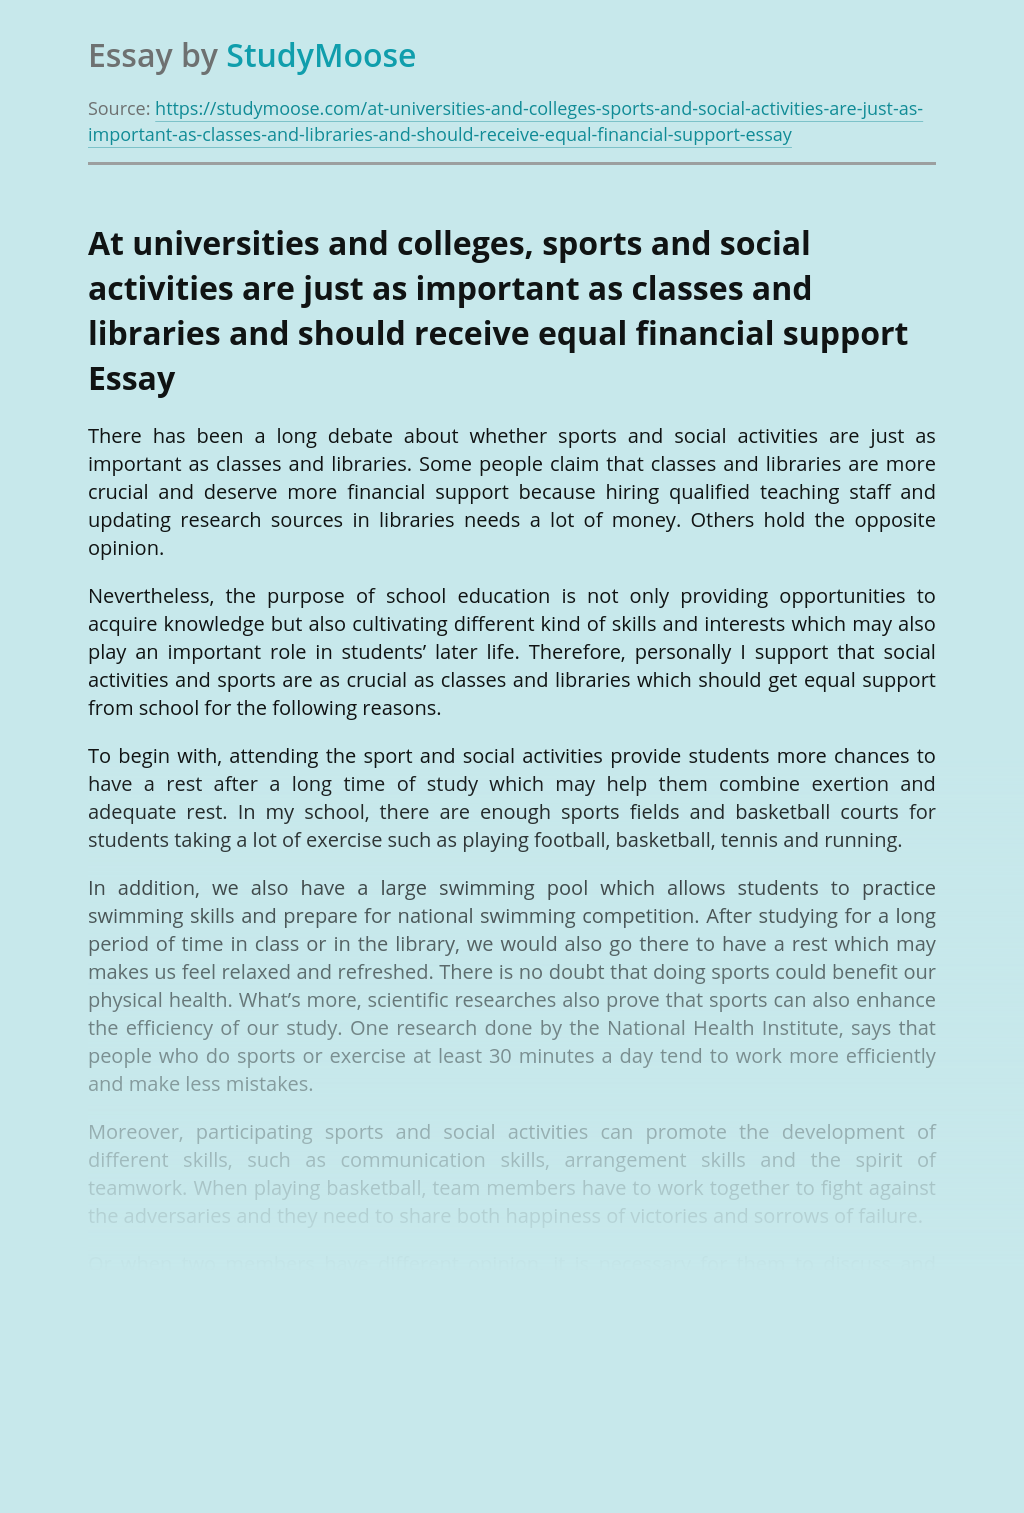 At universities and colleges, sports and social activities are just as important as classes and libraries and should receive equal financial support